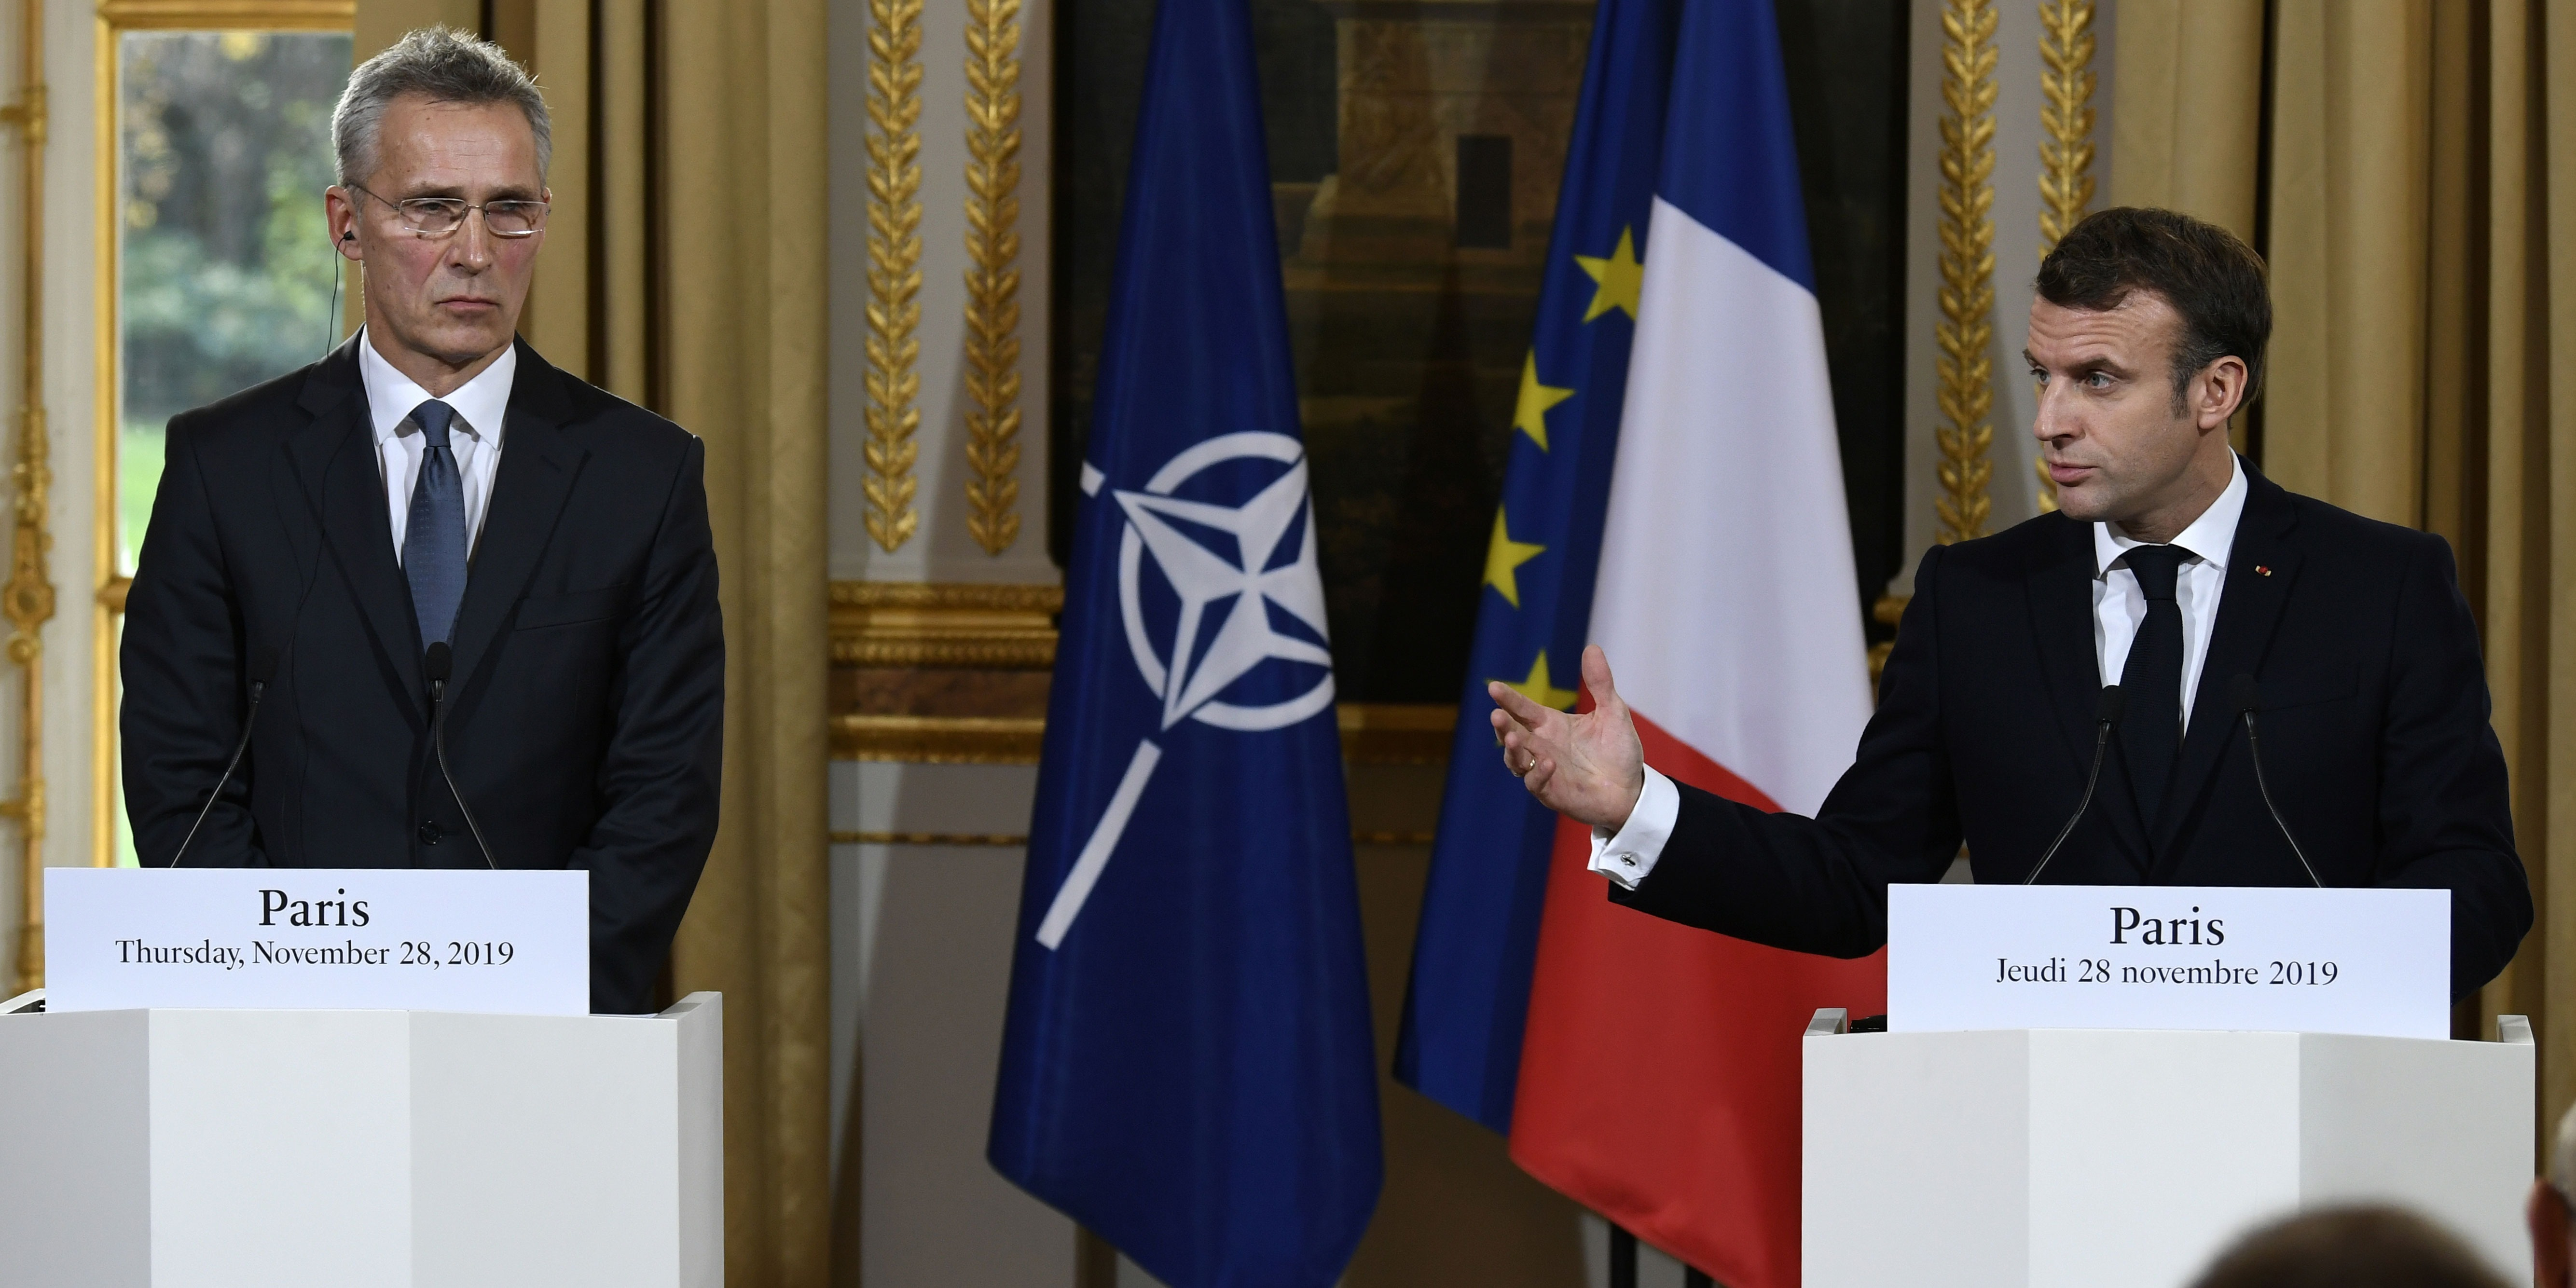 Nato Macron Was Very Insulting According To Donald Trump Teller Report